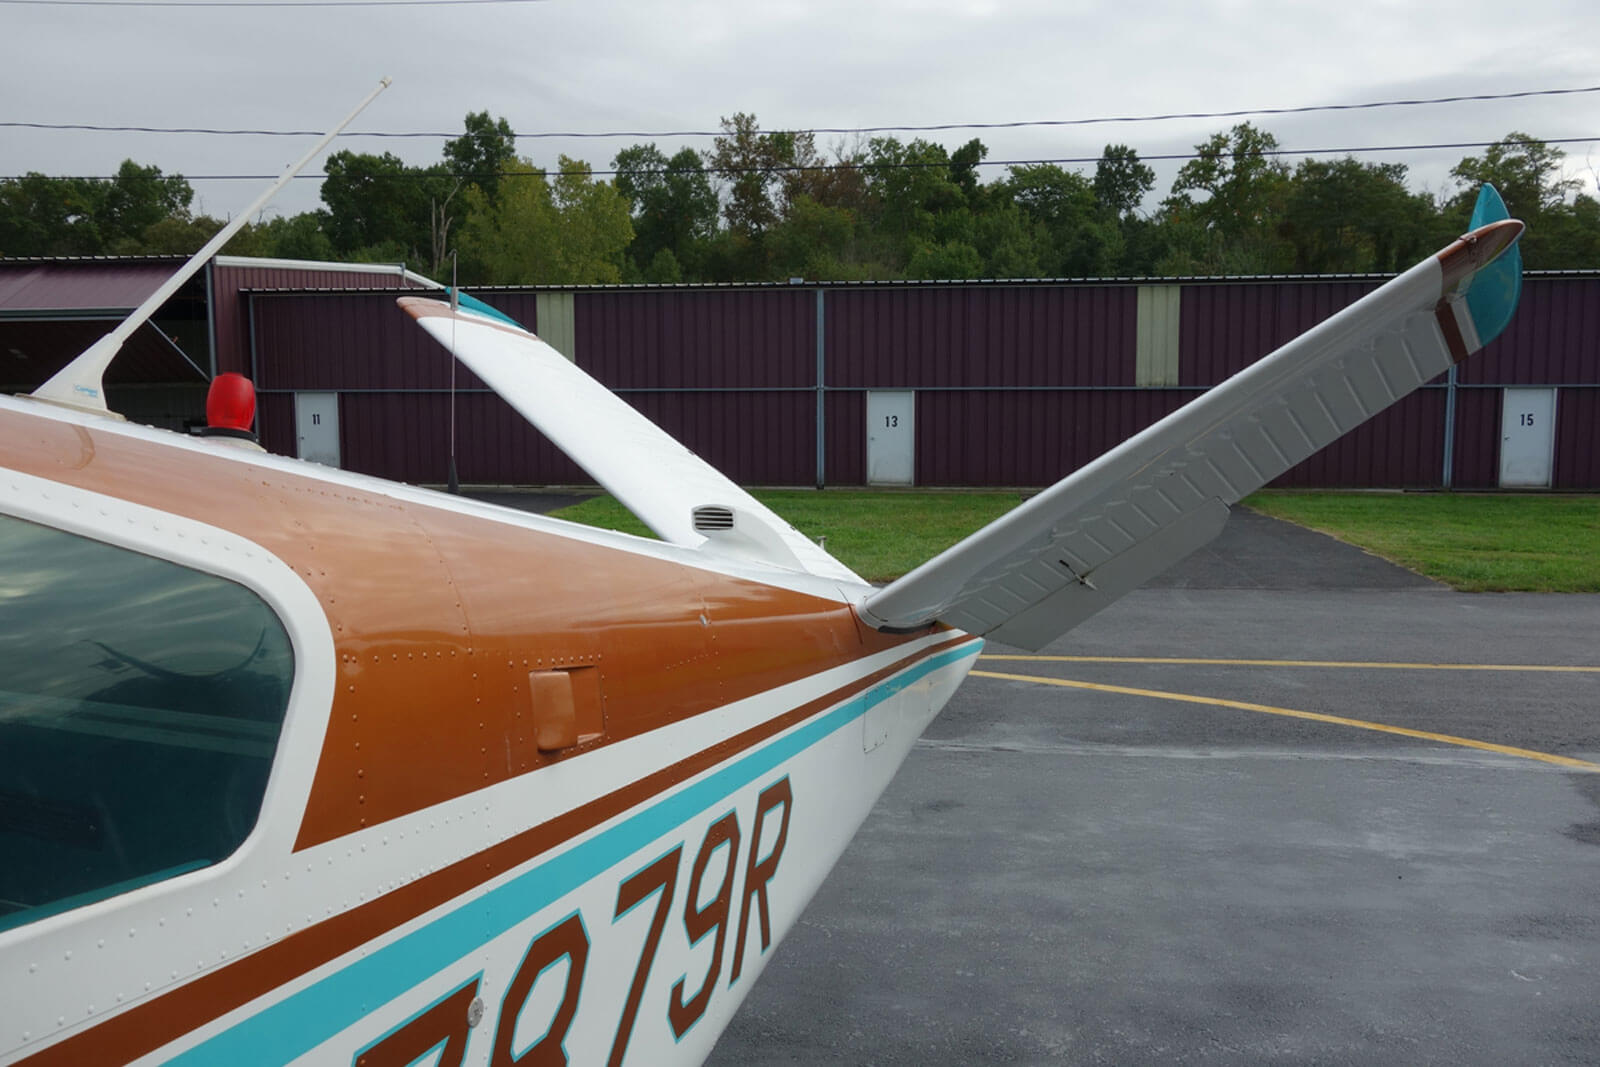 1969 V35A Bonanza - FOR SALE at Princeton Airport – Contact Ken Nierenberg at 609-731-4628 for details.